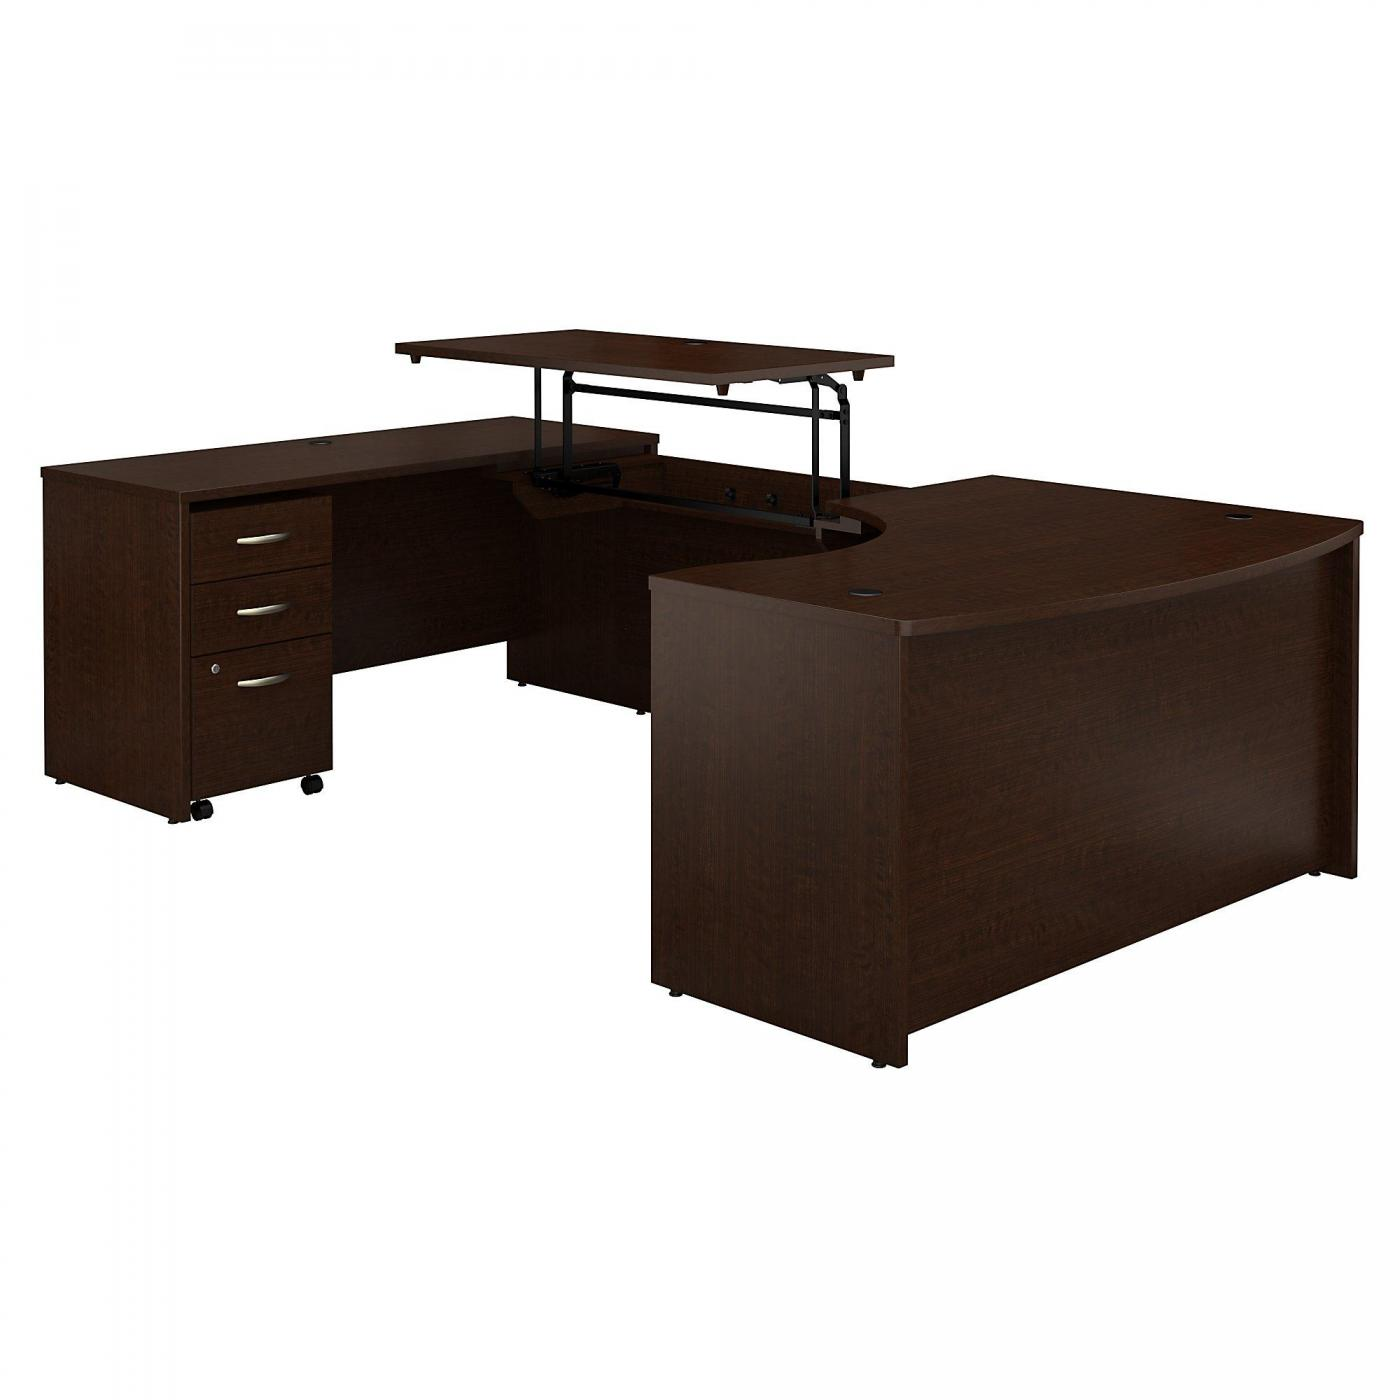 <font color=#c60><b>BUSH BUSINESS FURNITURE SERIES C 60W X 43D RIGHT HAND 3 POSITION SIT TO STAND U SHAPED DESK WITH MOBILE FILE CABINET. FREE SHIPPING</font></b>